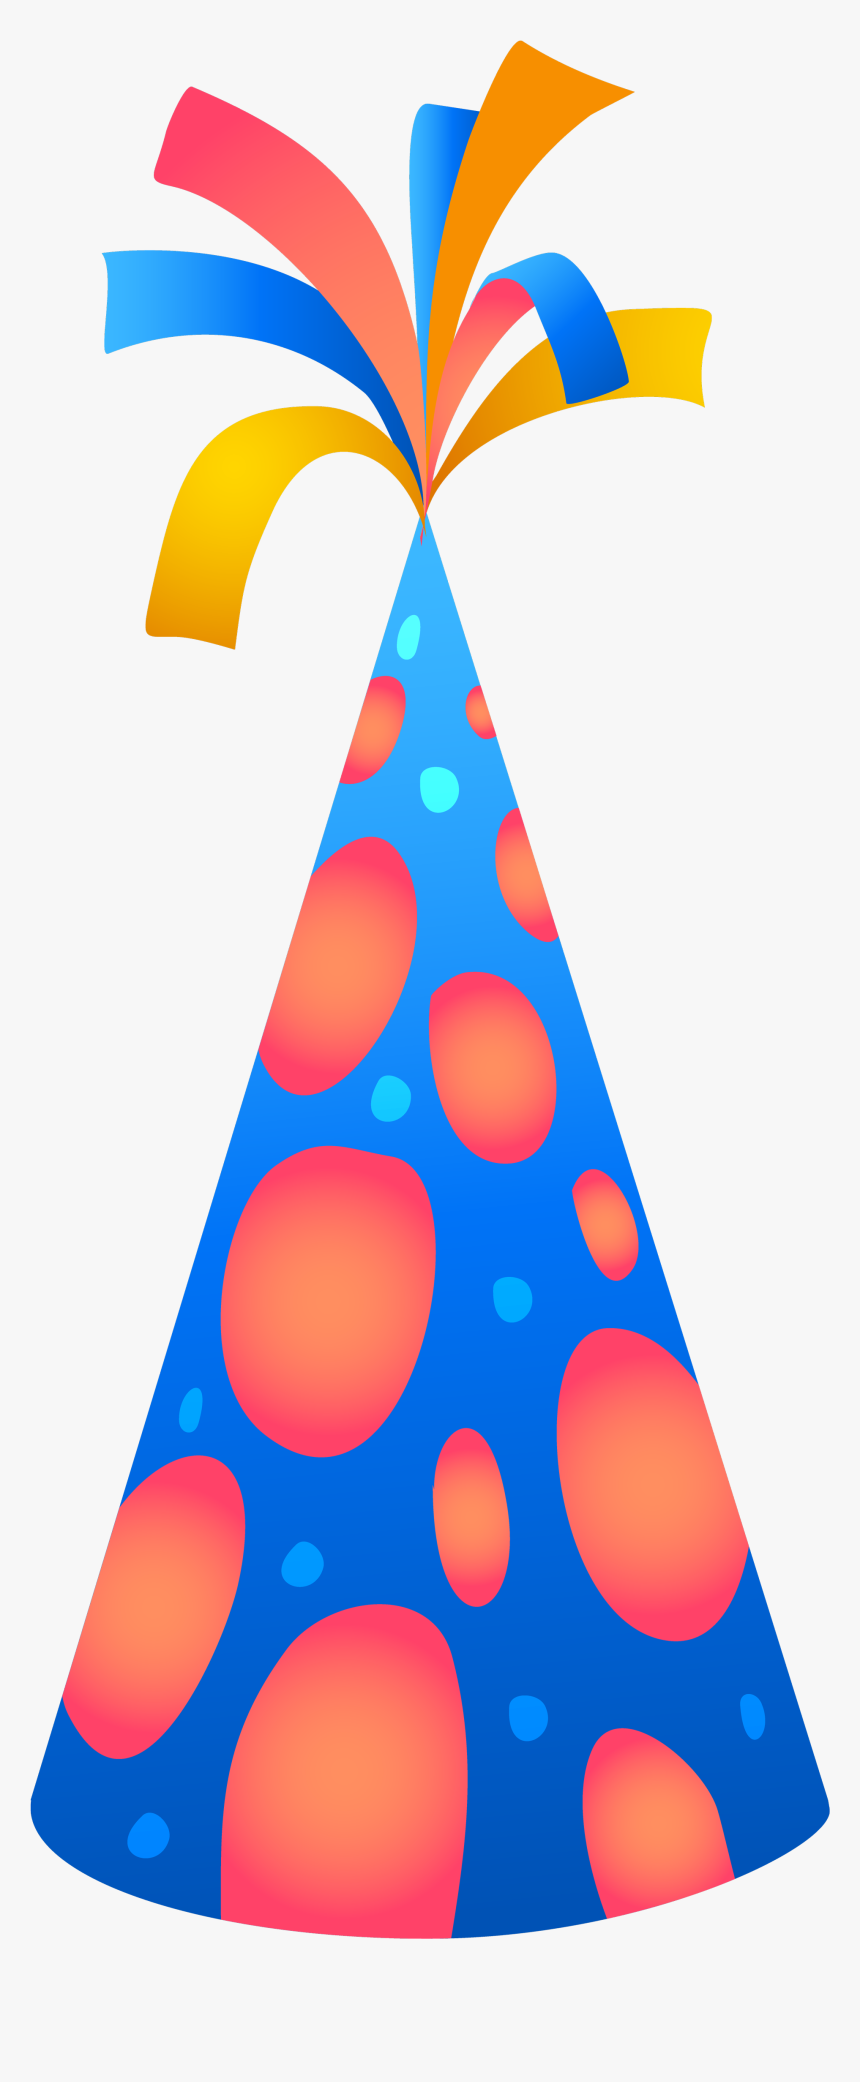 Party Hat Png Image - Png Transparent Party Hat, Png Download, Free Download